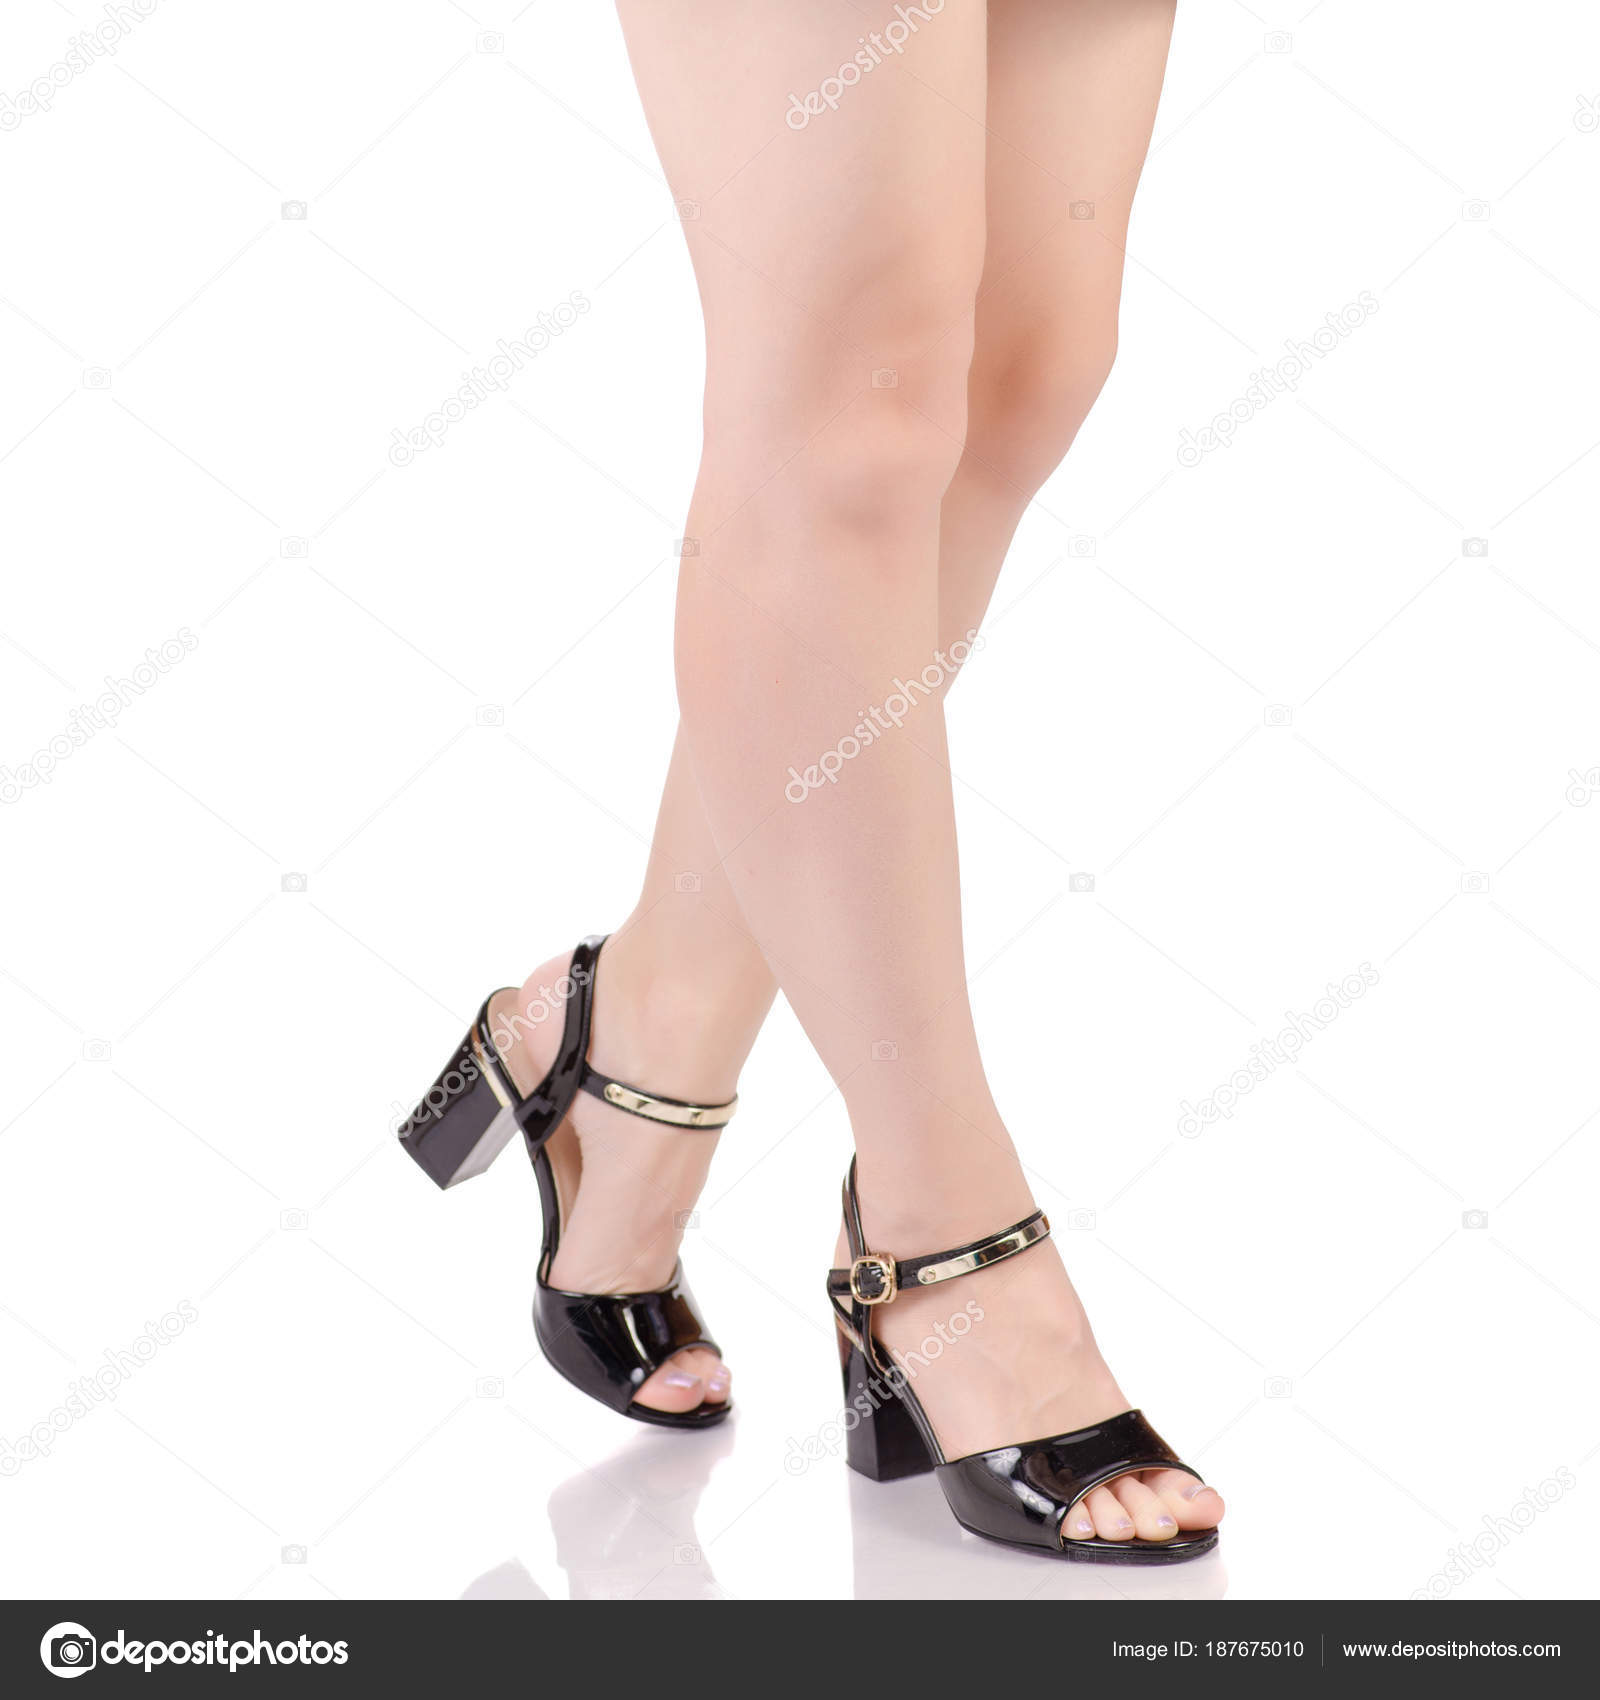 a63b85f7f Female legs in black lacquered shoes sandals beauty fashion buy shop on  white background isolation — Photo by ...